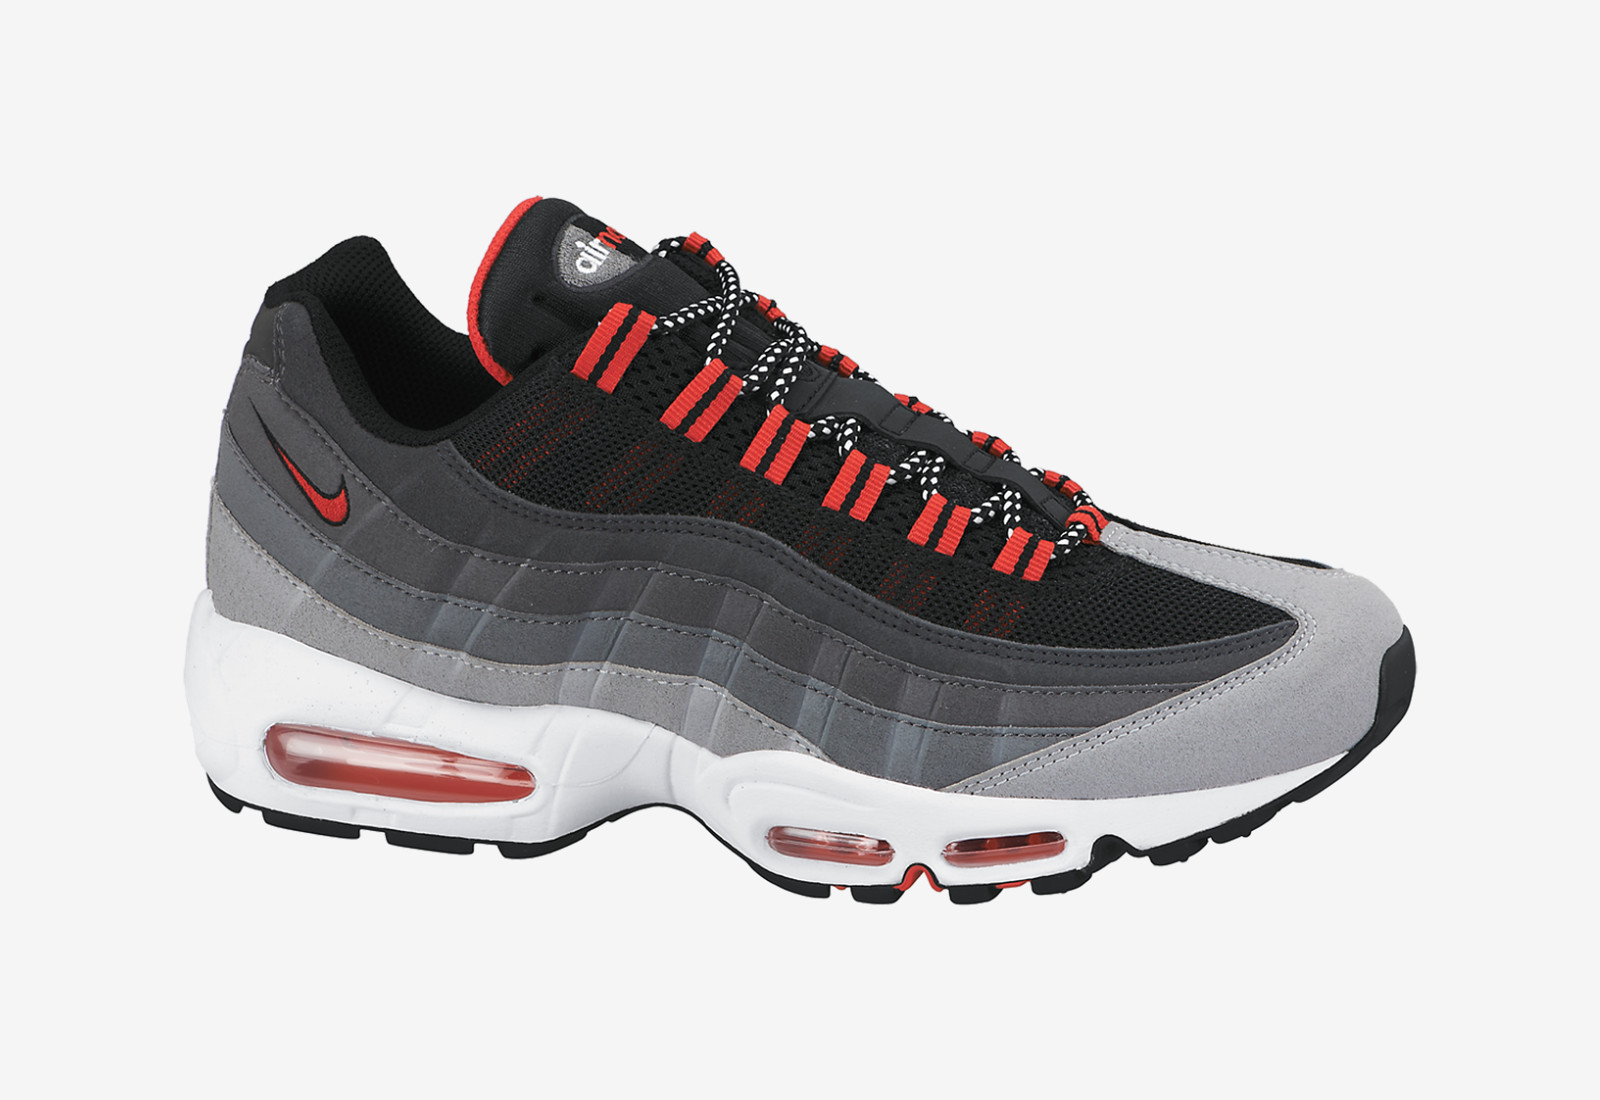 4e48057736 nike air max 95 grey red > OFF69% Discounts